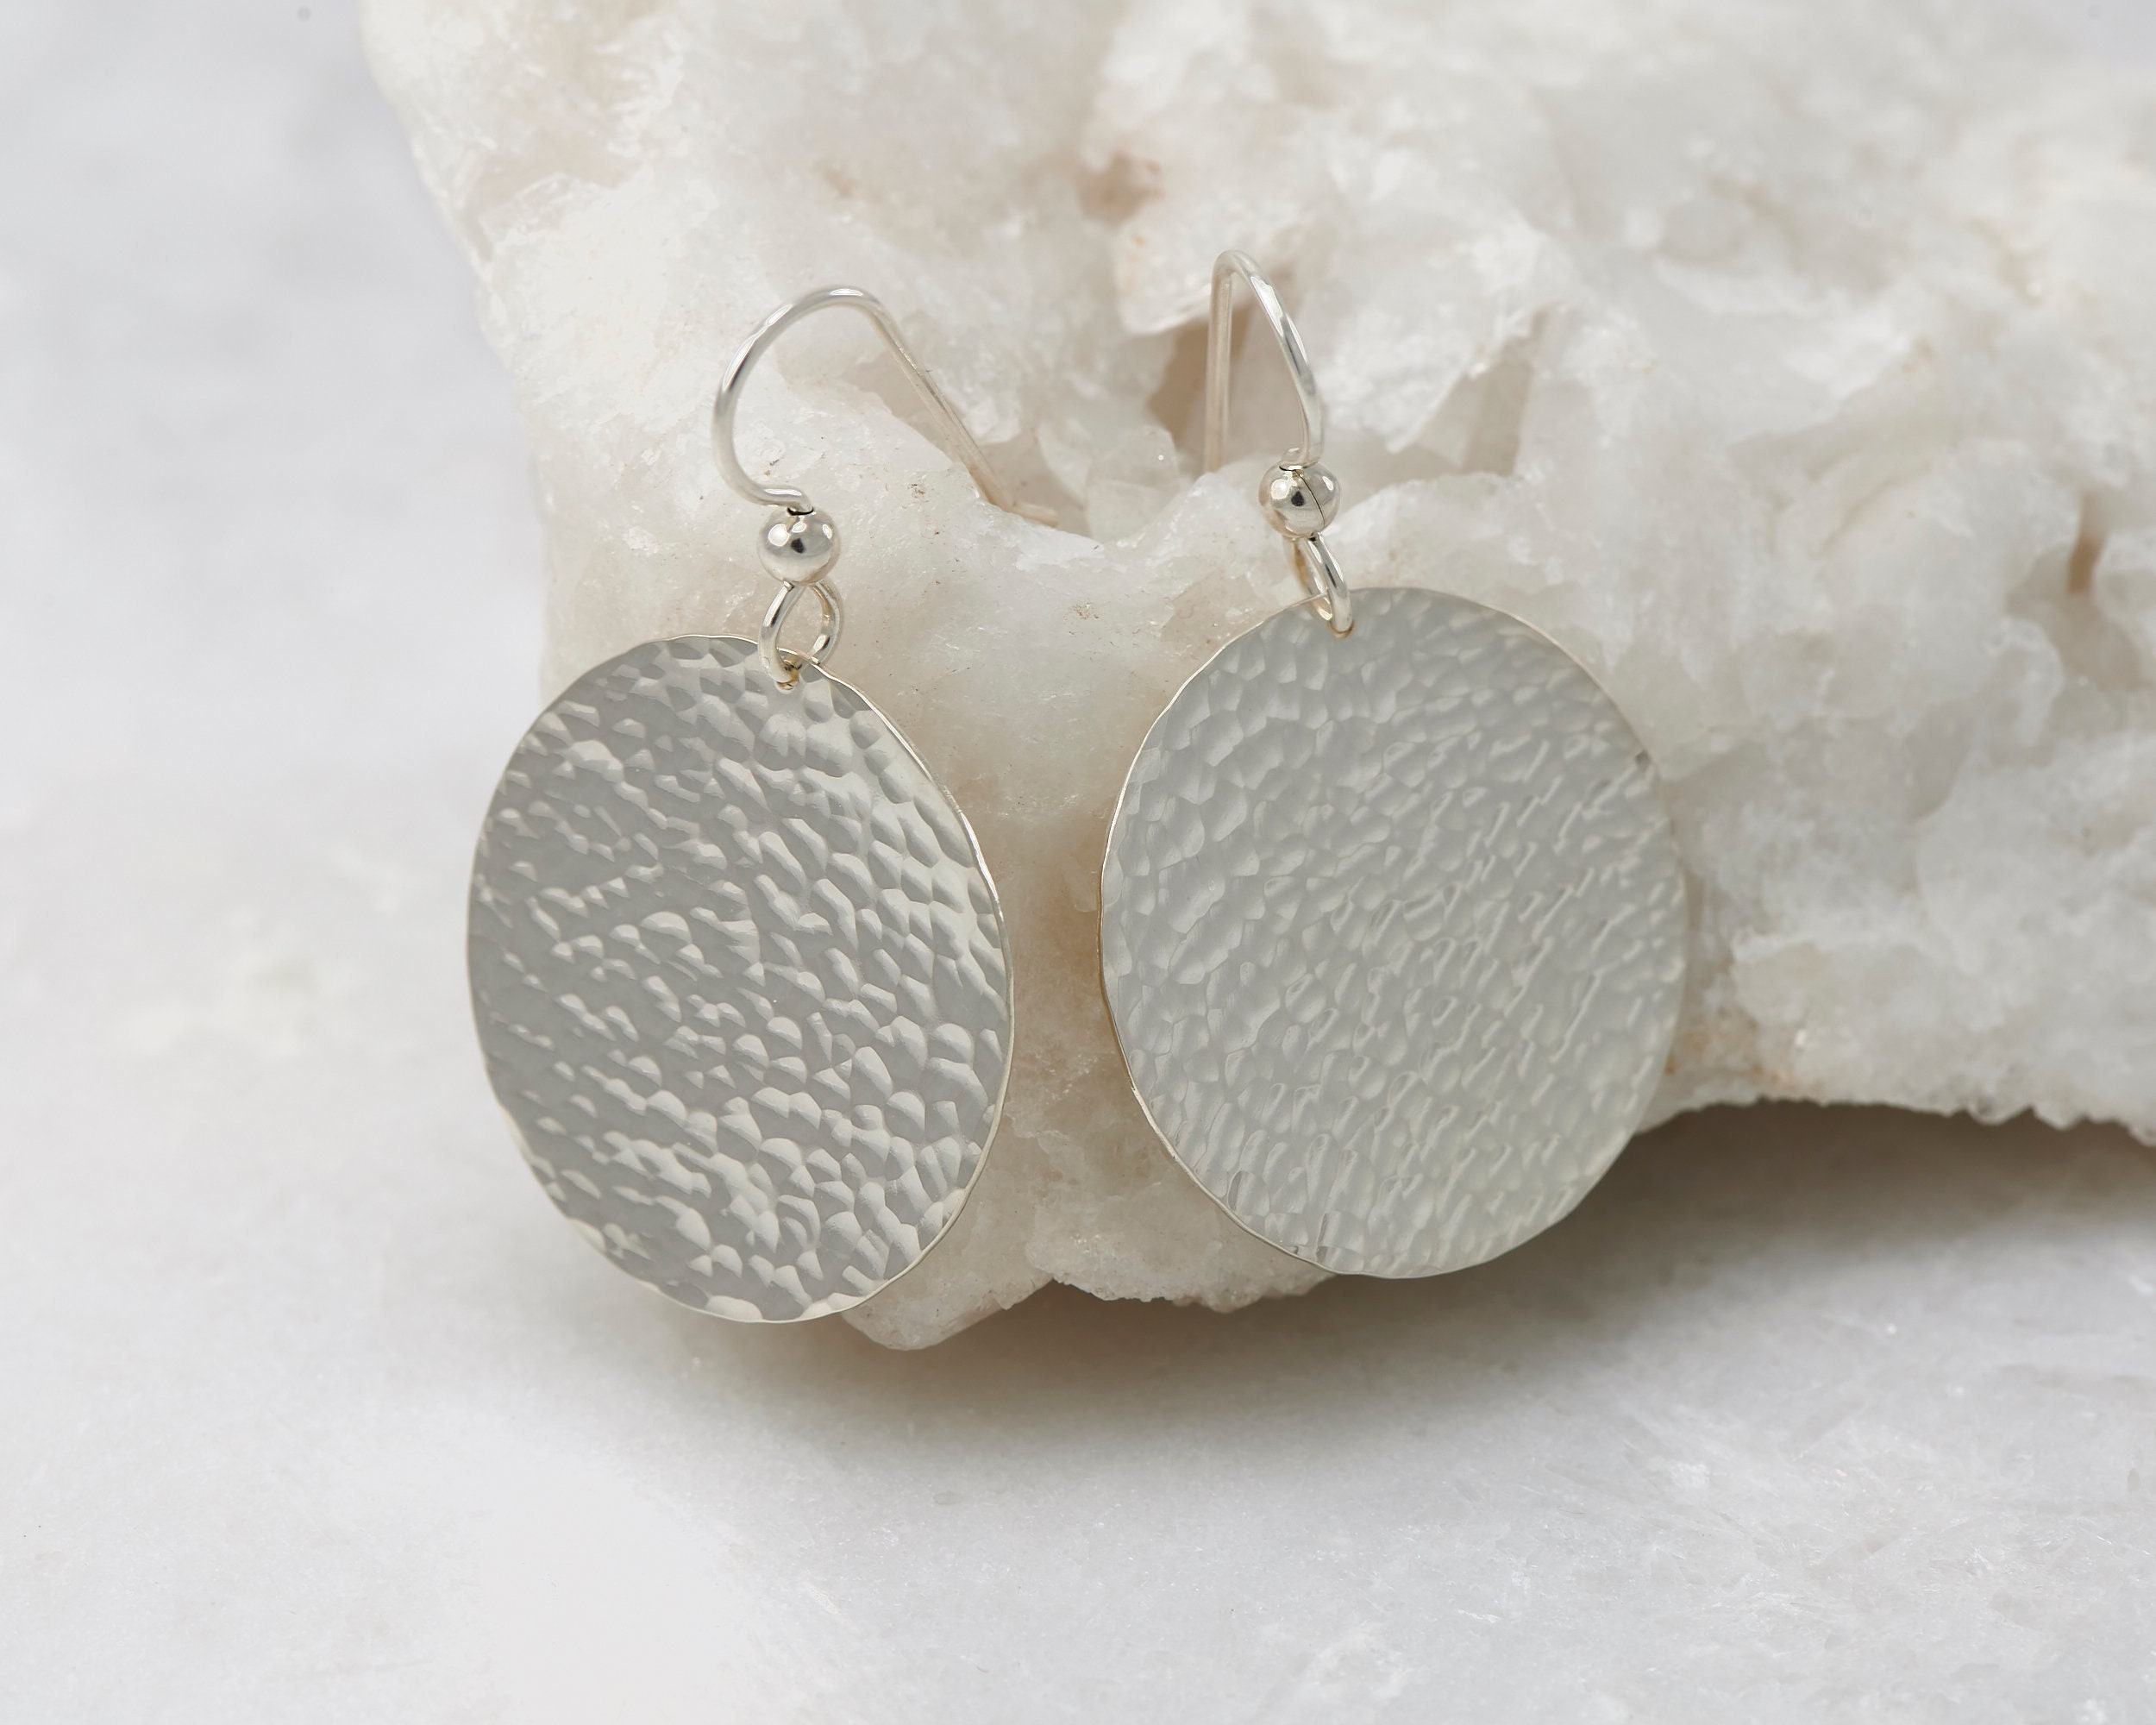 af3595534a0 Silver Hammered Disc Earrings- Large Sterling Silver Earrings- Silver ...